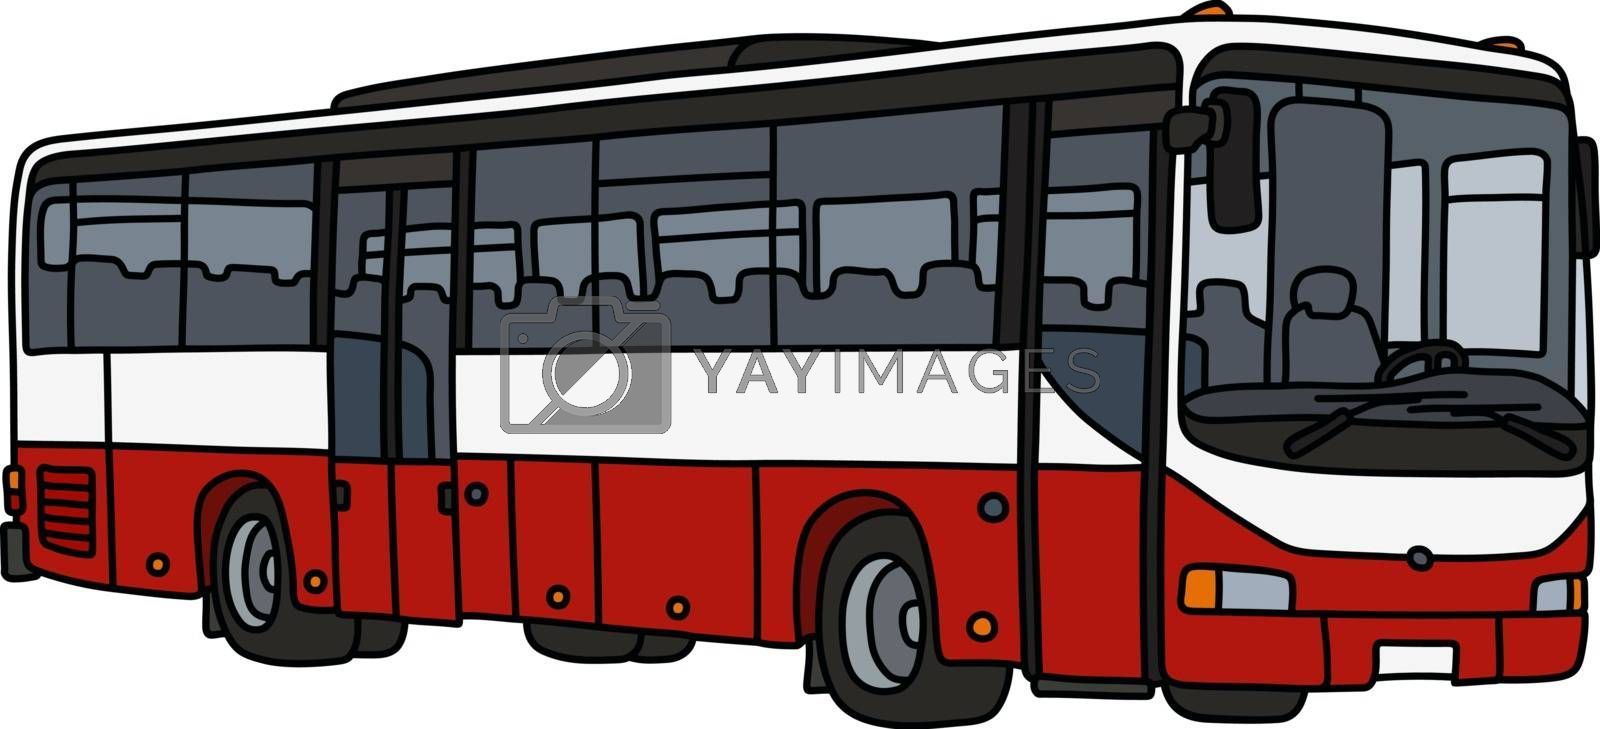 The vectorized hand drawing of a red and white bus